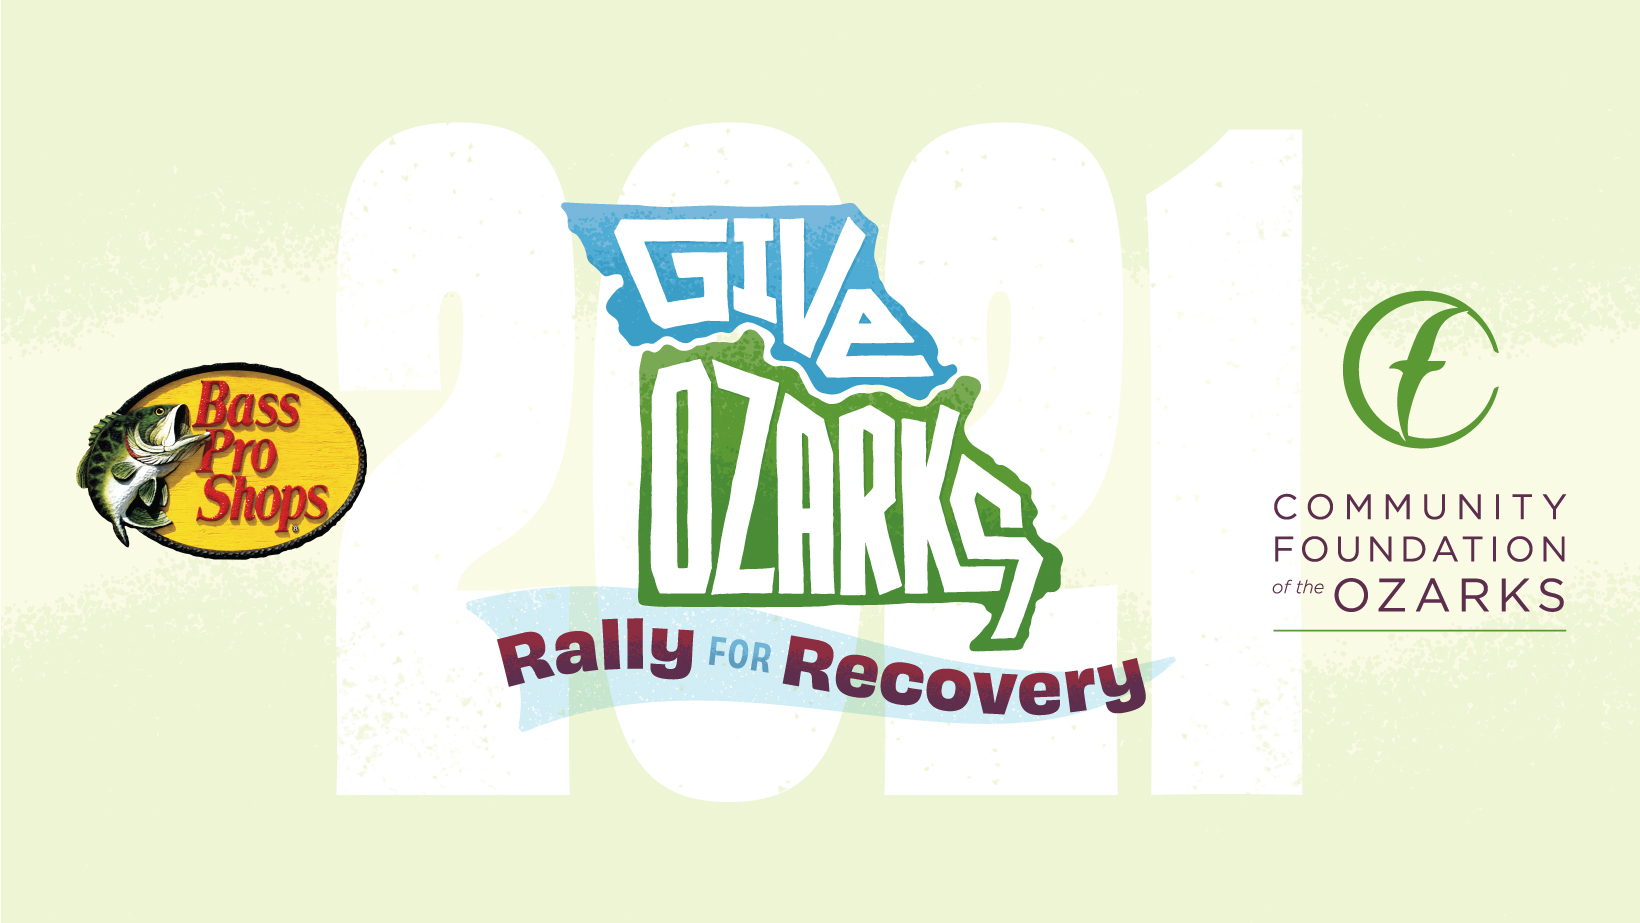 Give culture this Give Ozarks!